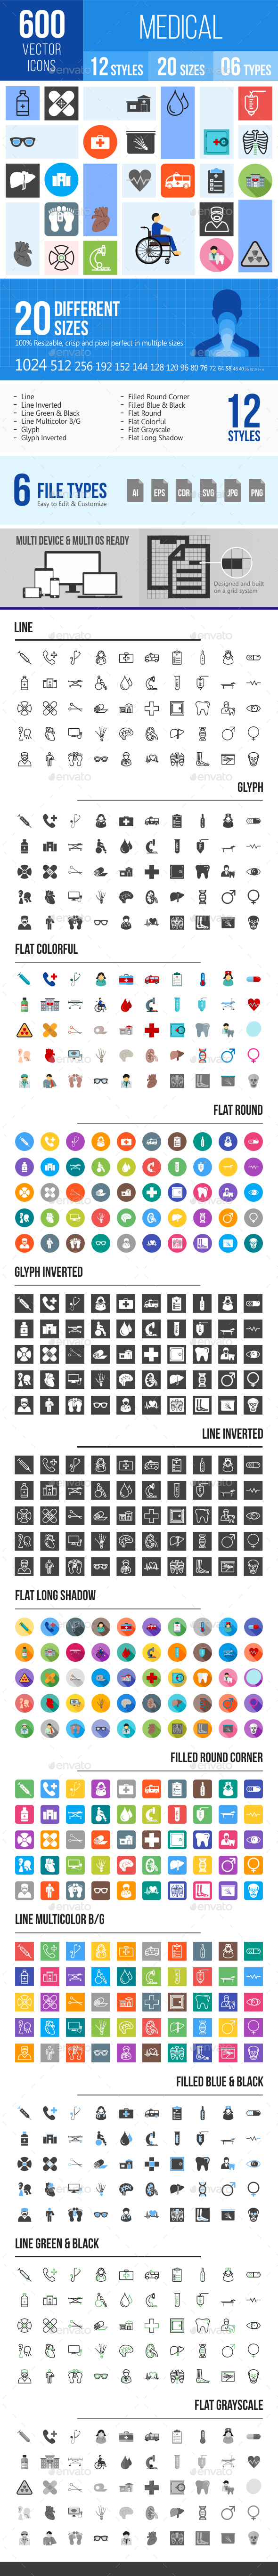 600 Medical Icons - Icons